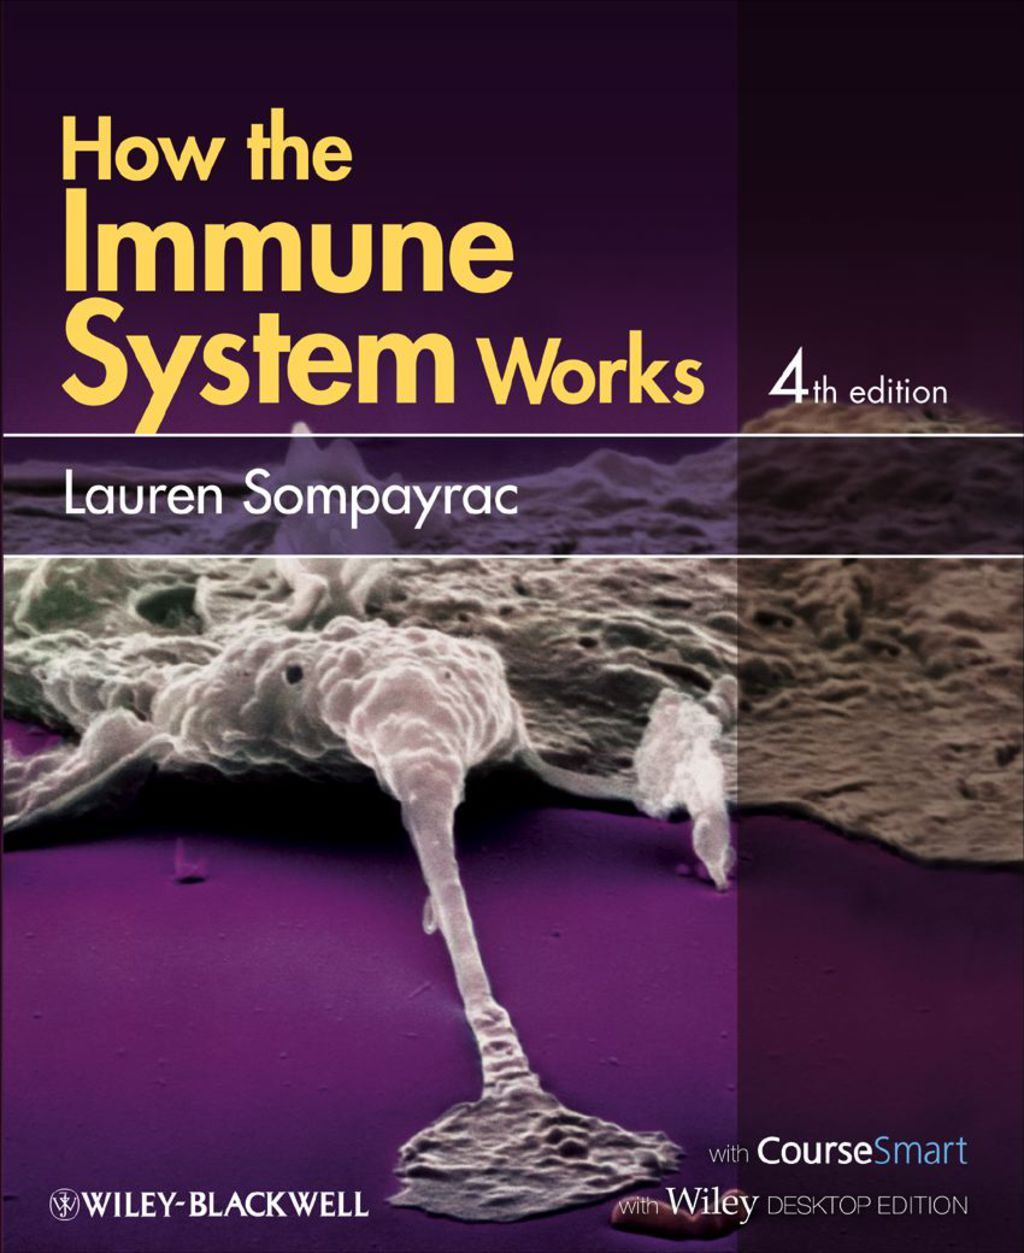 How The Immune System Works Ebook With Images